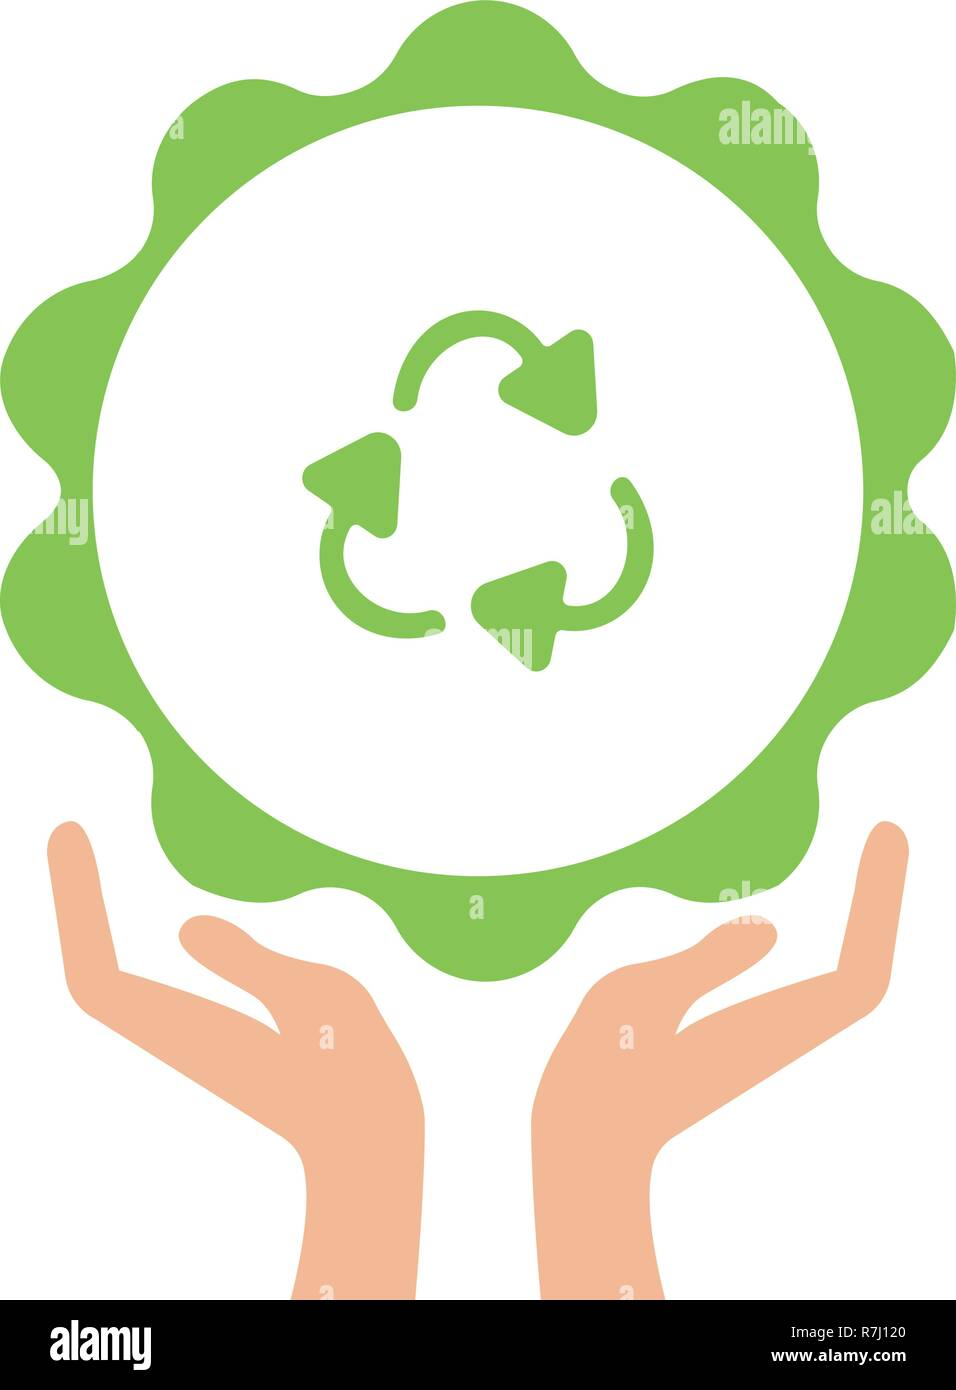 Open arms with recycling sign glyph color icon. Pollution prevention. Silhouette symbol. Waste recycling. Negative space. Raster isolated illustration - Stock Image